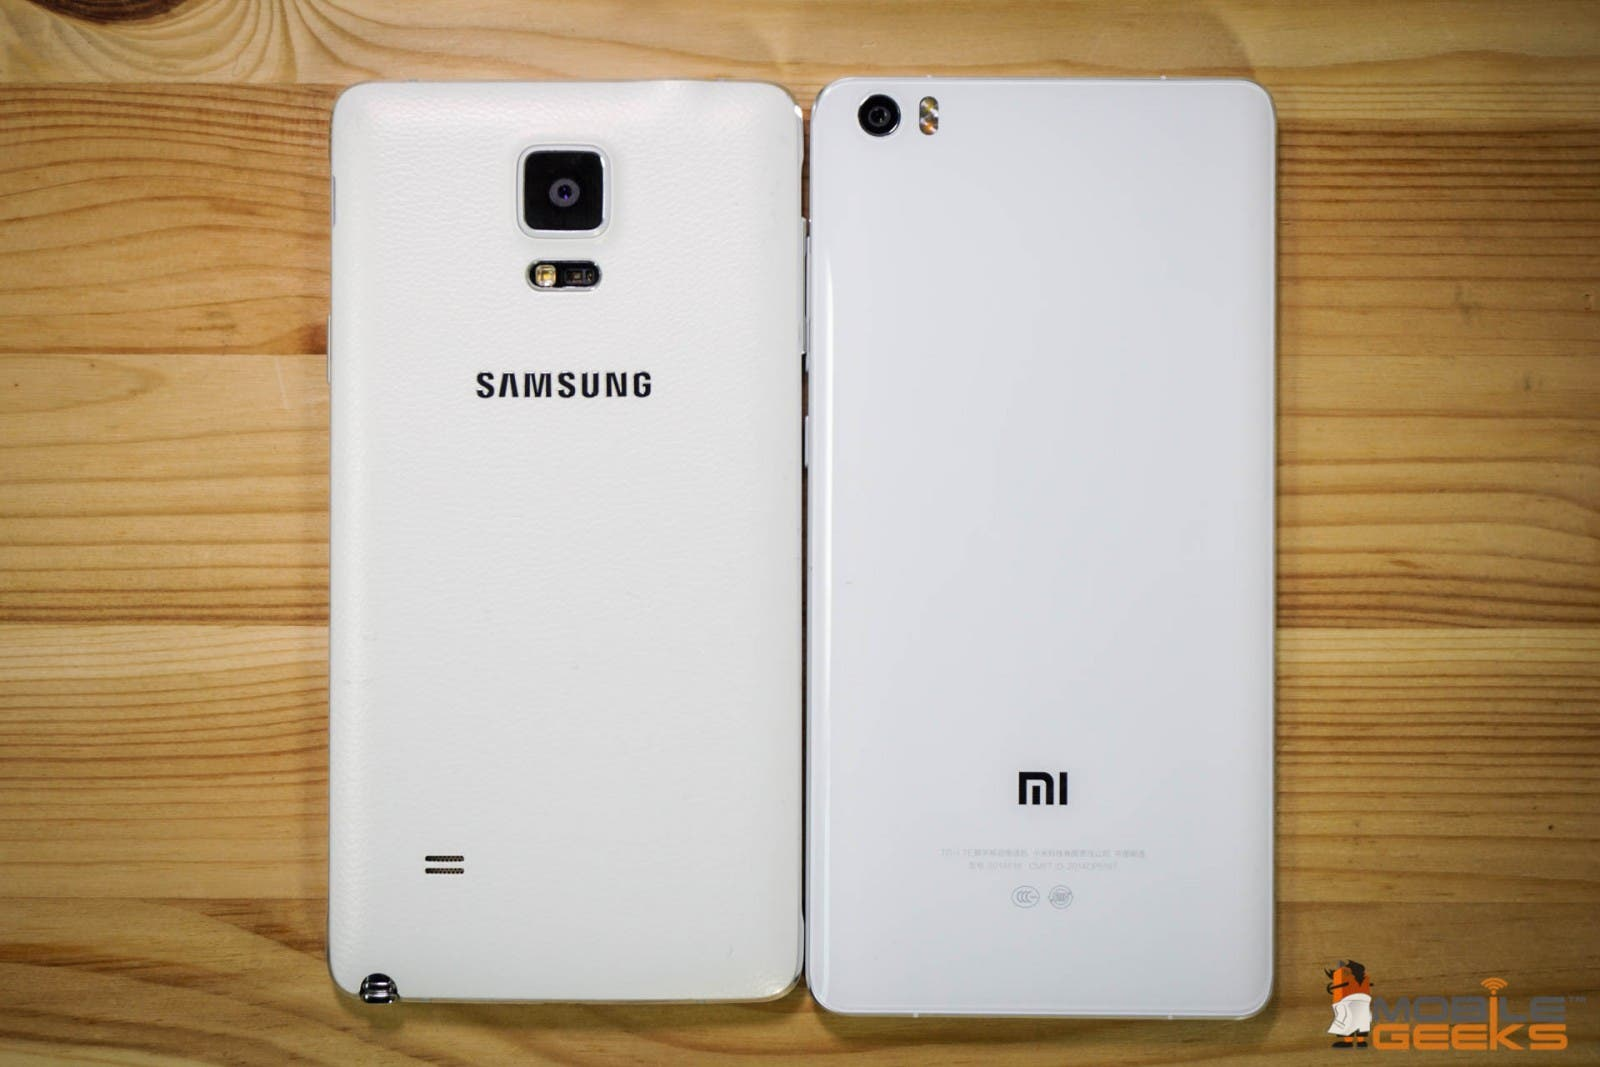 xiaomi-mi-note-samsung-galaxy-note-4-5